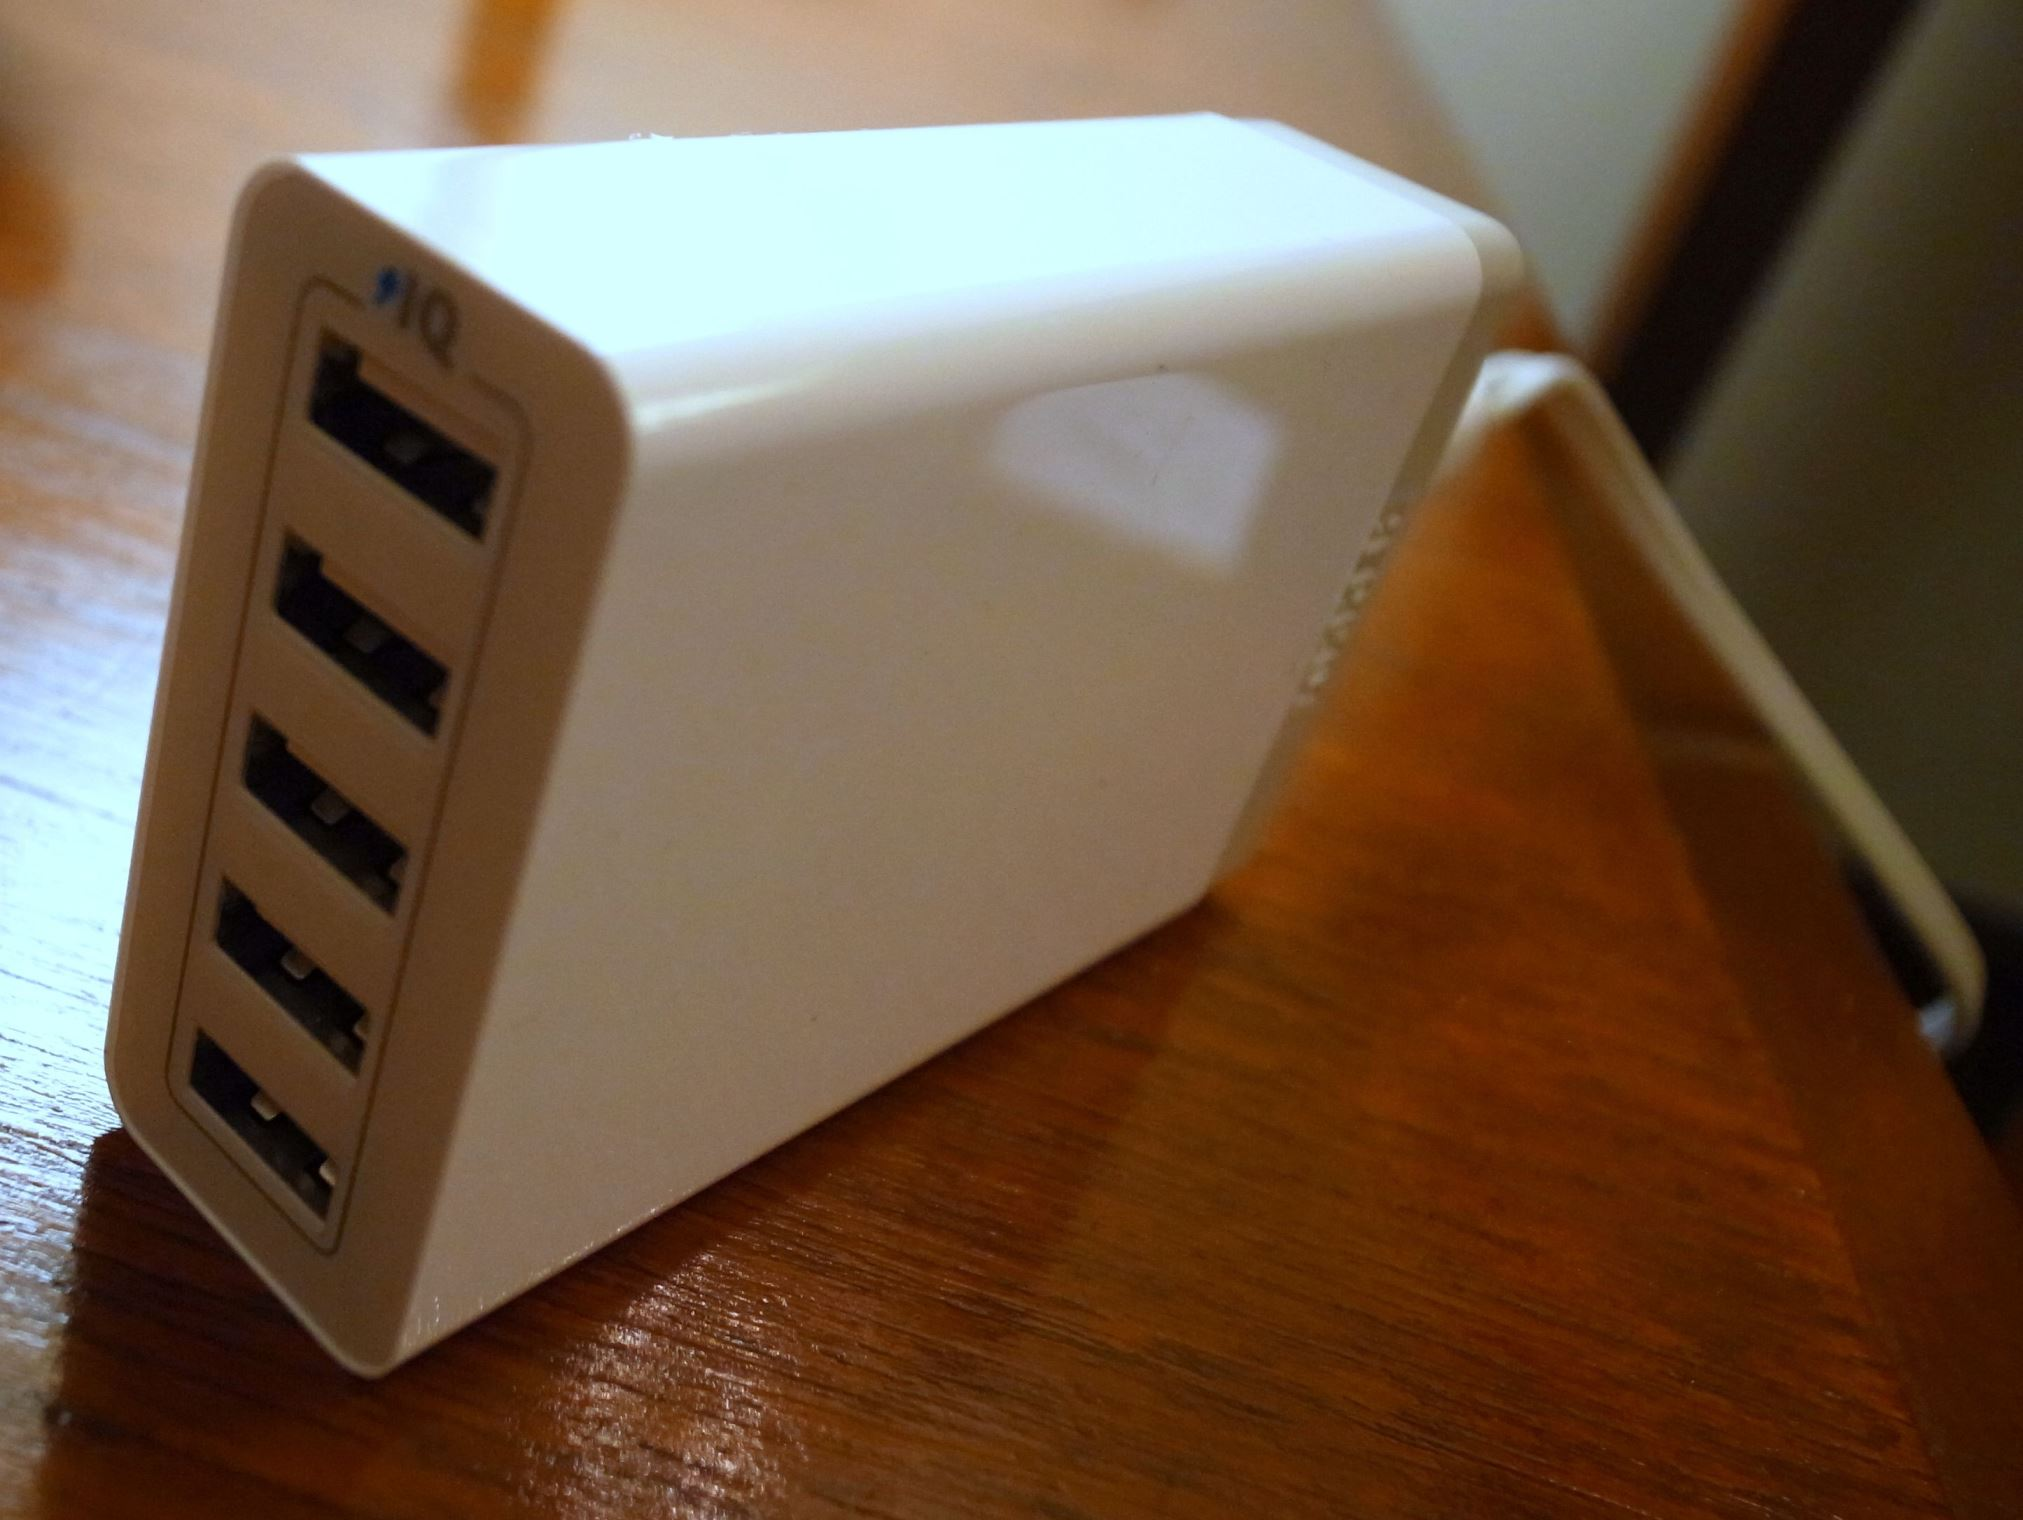 ANKERの5-port Desktop Chargerは素晴らしい